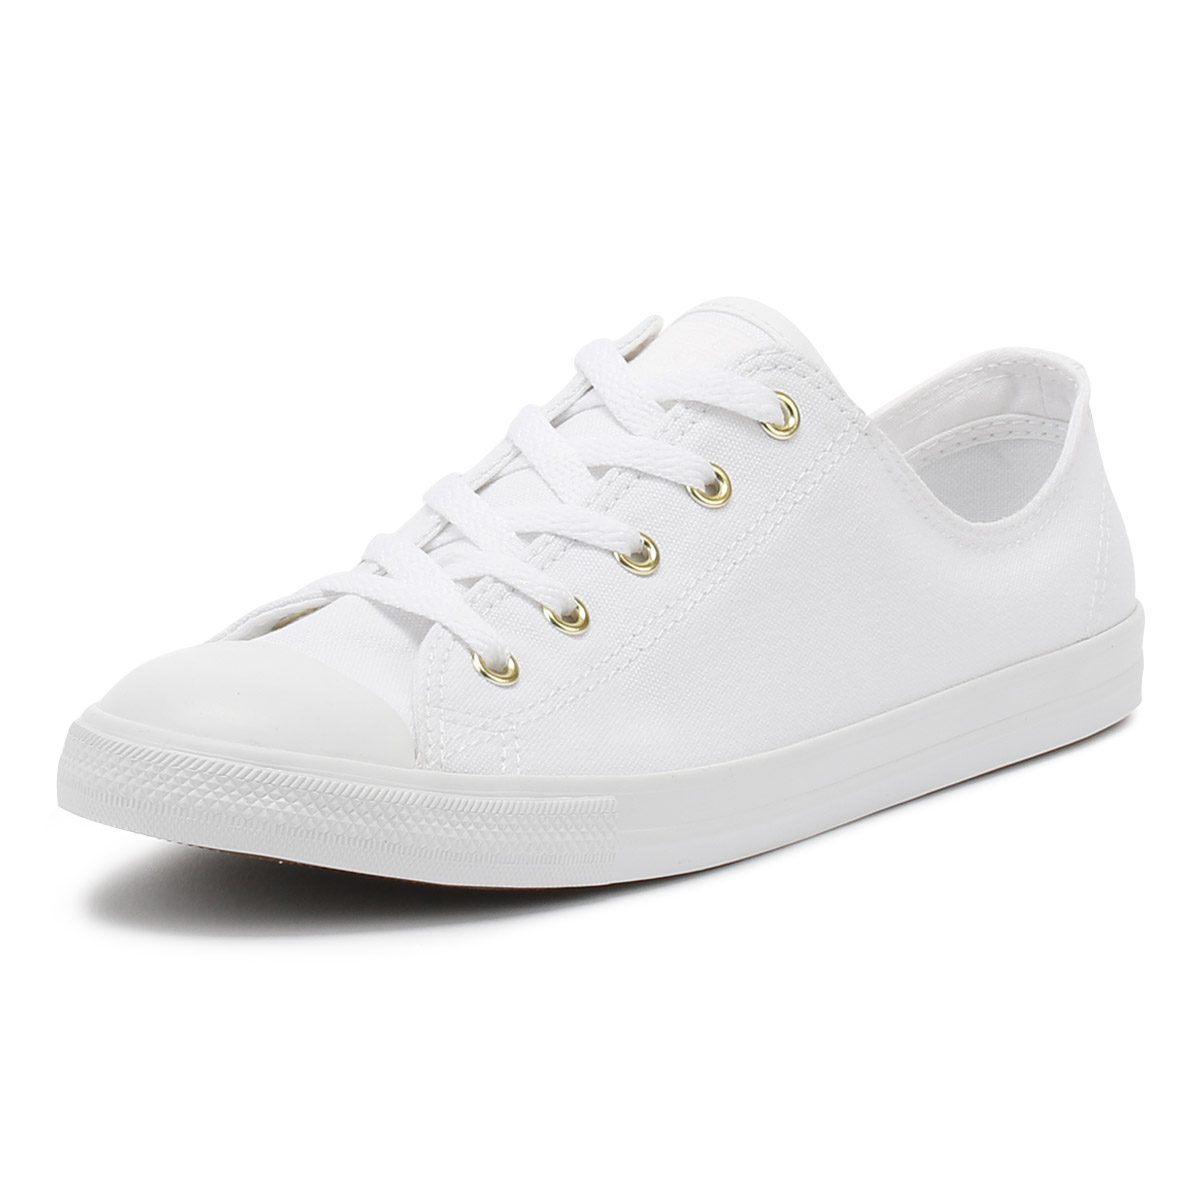 eac44d87b3f6 Details about Converse Chuck Taylor All Star Womens Ox Trainers White  Dainty Ox Casual Shoes